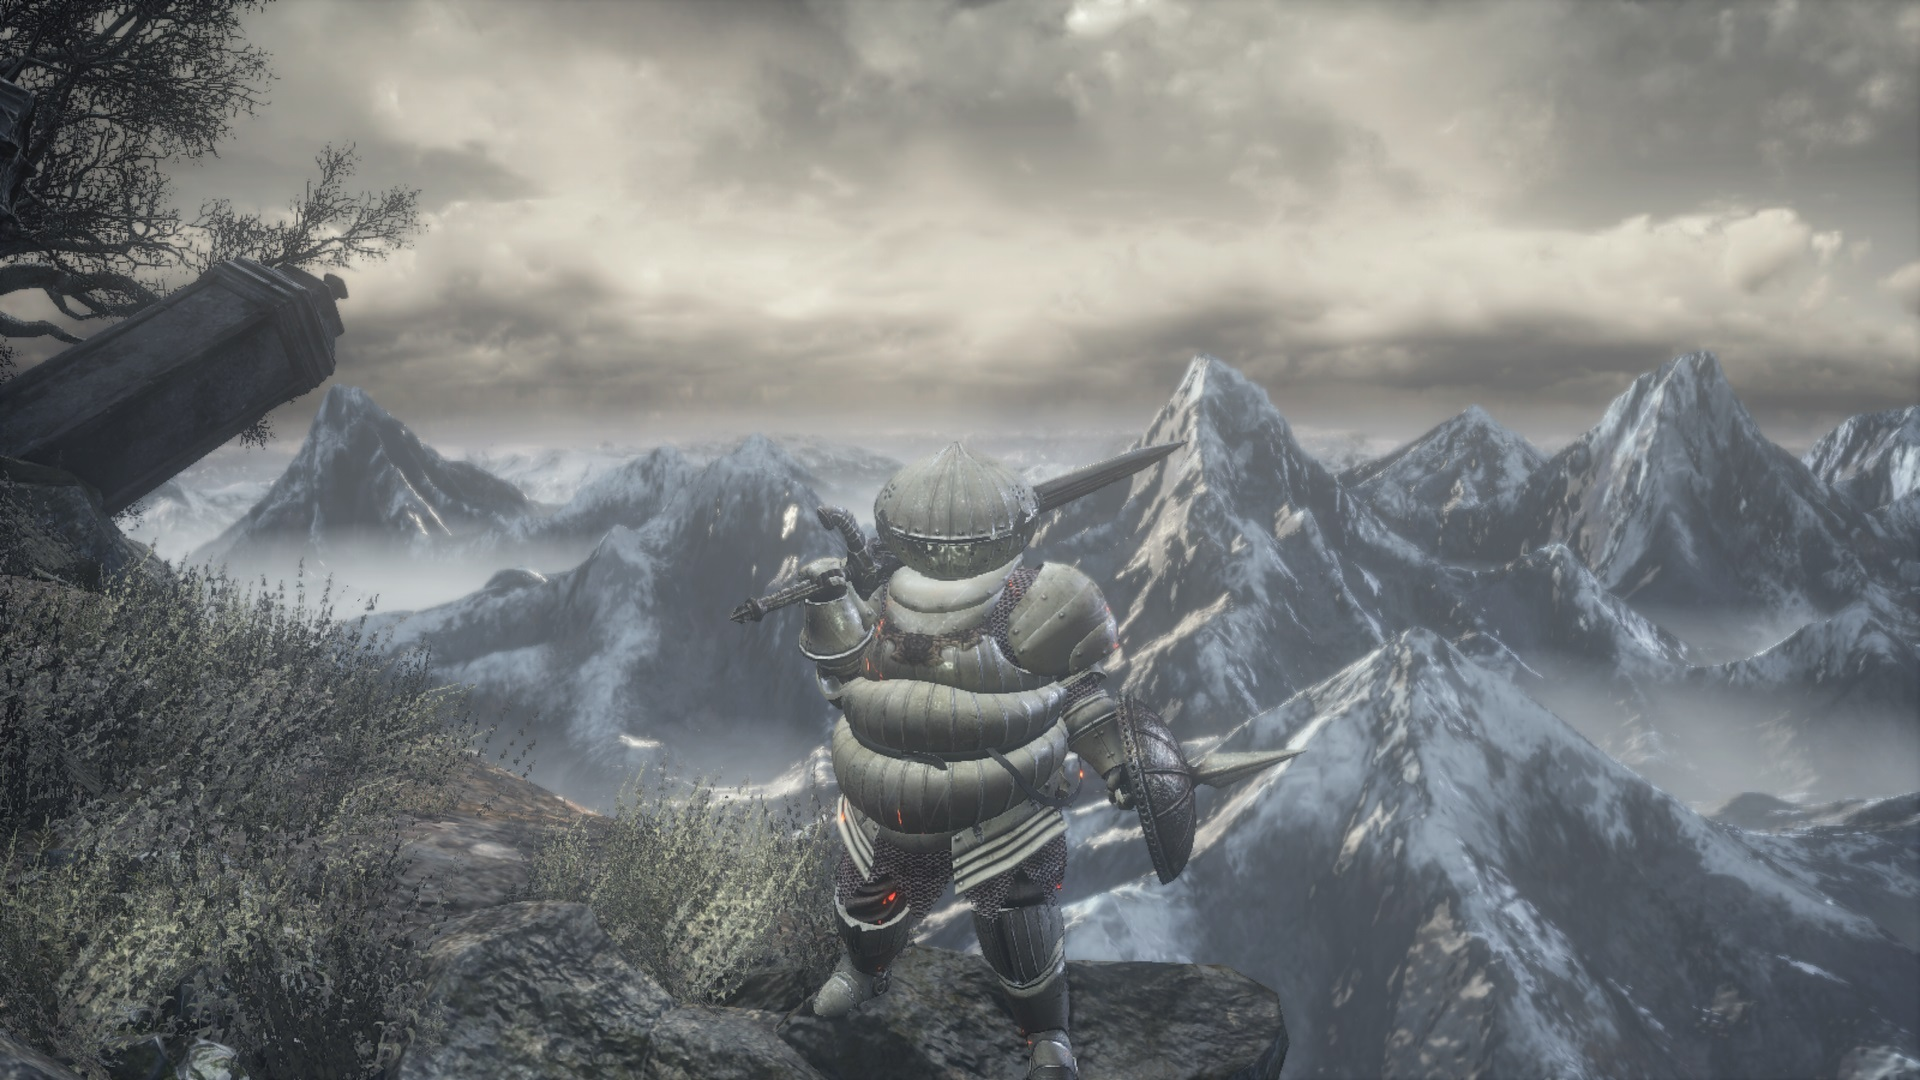 Dark Souls 3 How To Get The Catarina Armor Set Find Patches Siegward Usgamer Eerily shaped helmet/armor/gauntlets/leggings spoken of in legend, crafted with the scales of the black dragon. catarina armor set